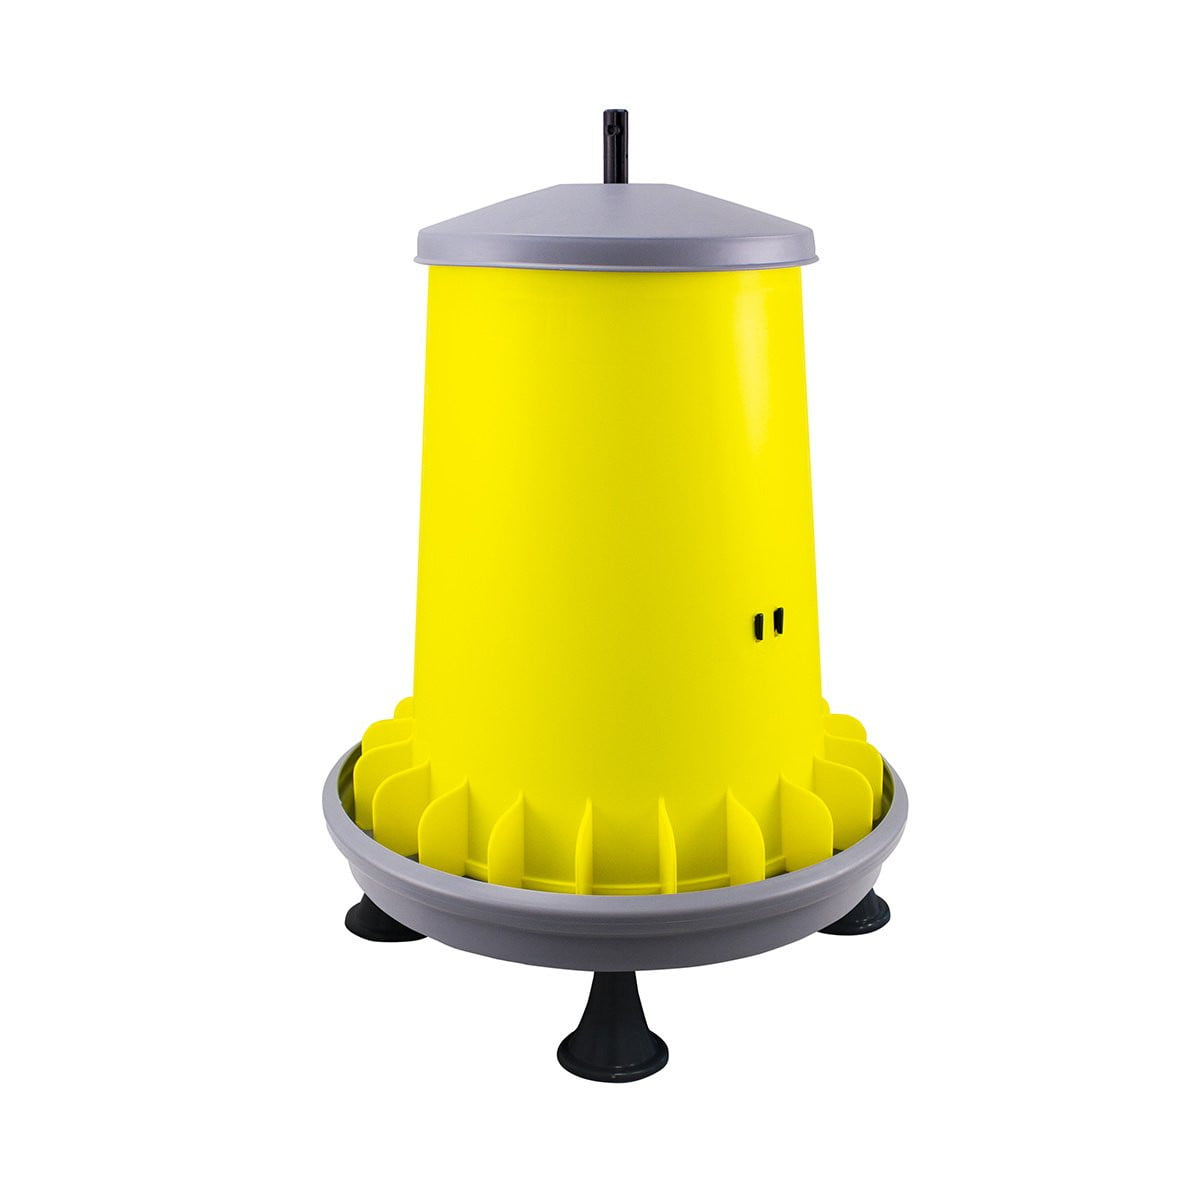 Arcus Gyro Poultry Feeder - Urban-Egg - Poultry Roll Away Nest Boxes, Chicken Feeders, and More